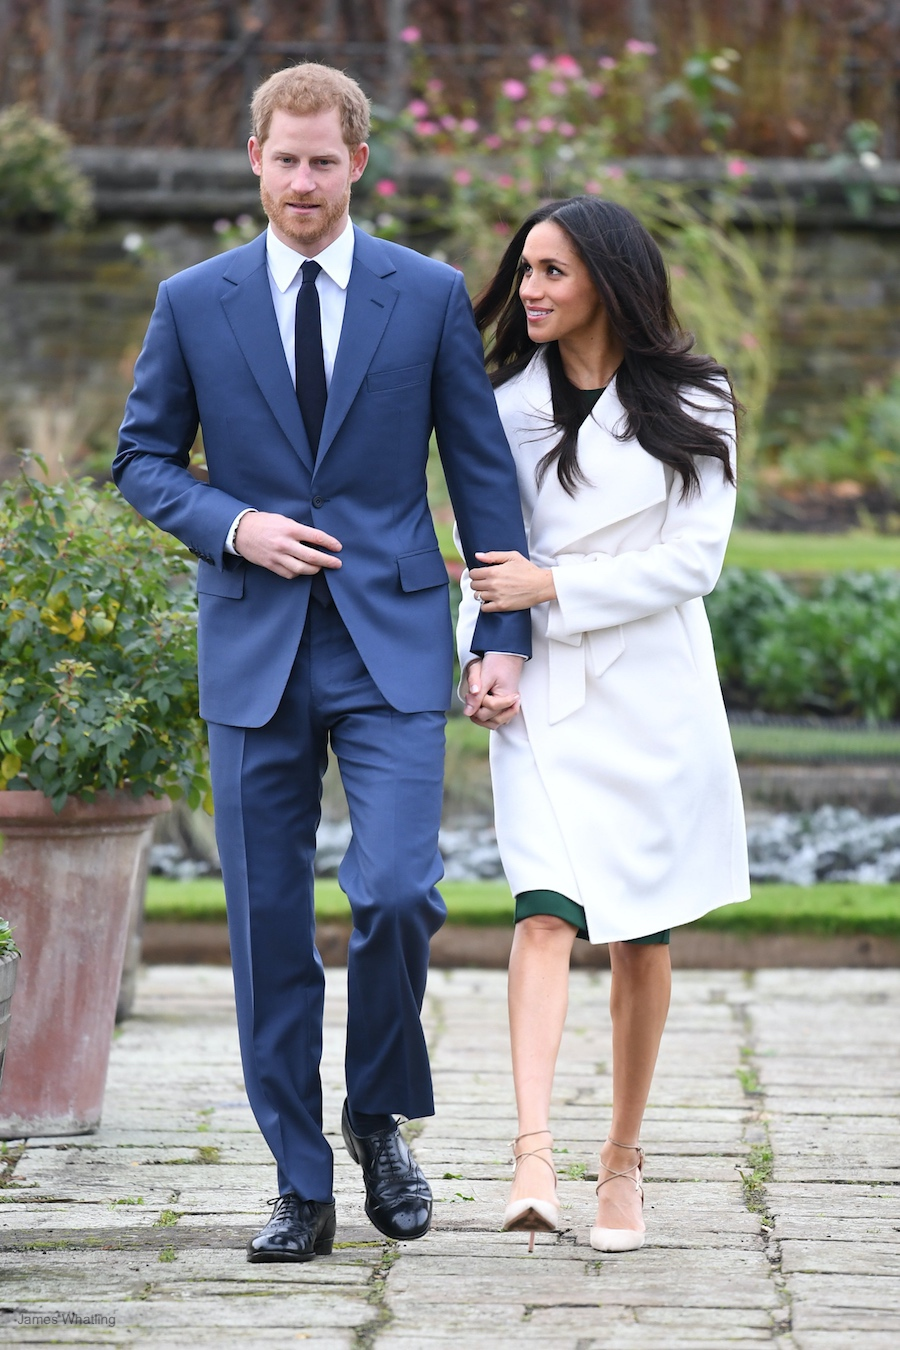 Meghan Markle's engagement annoucement outfit